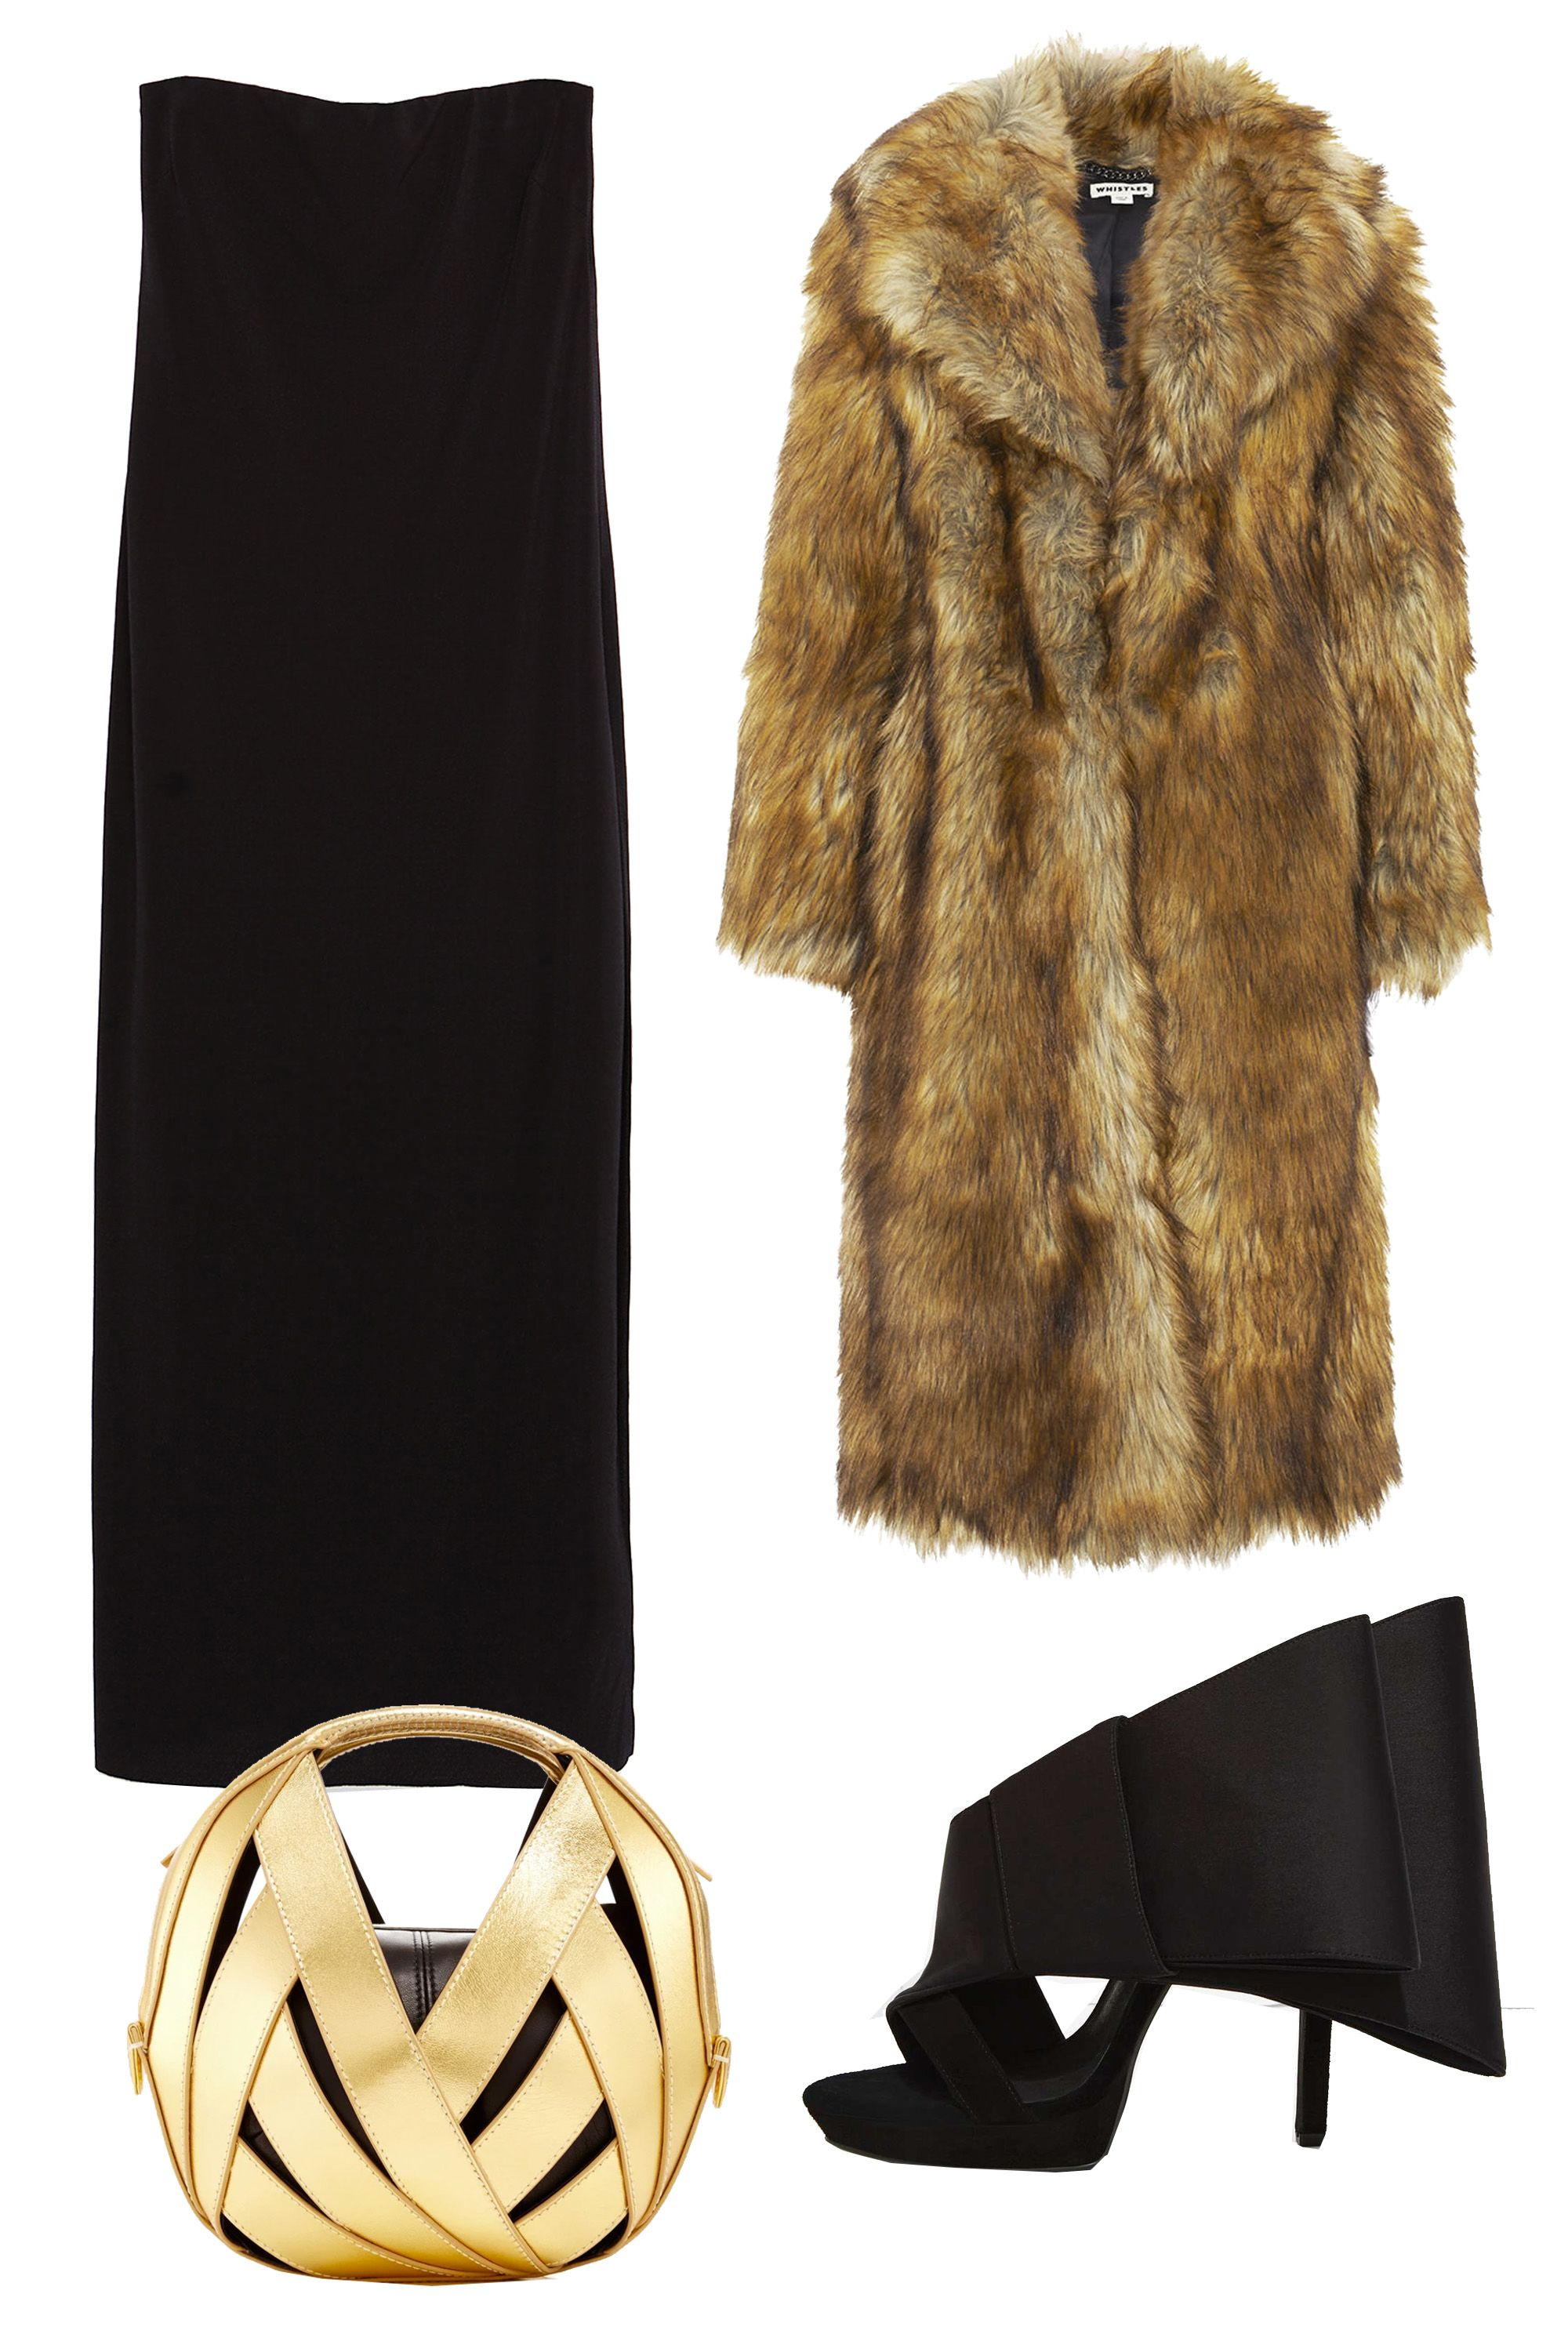 """<p>A major fur coat like this one by Whistles should be worn around people with whom you feel truly comfortable. Paired with a unique gold clutch and sky-high mules, this outfit is meant for sipping martinis with your friends. </p><p>Zara Dress with Shoulder Slits, $30; <u><a href=""""http://www.zara.com/us/en/woman/dresses/view-all/dress-with-shoulder-slits-c733885p2813065.html"""" target=""""_blank"""">zara.com</a></u><br></p><p><u><a href=""""http://www.zara.com/us/en/woman/dresses/view-all/dress-with-shoulder-slits-c733885p2813065.html""""></a></u>Jeffrey Campbell Tuxedo Bow Heel, $160; <a href=""""http://www.nastygal.com/shoes-heels/jeffrey-campbell-tuxedo-bow-heel"""" target=""""_blank""""><u>nastygal.com</u></a></p><p>Perrin Paris Gold Calfskin Riva Ball Bag, $1,200; <a href=""""https://www.modaoperandi.com/perrin-fw15/gold-calfskin-riva-ball-bag-in-small"""" target=""""_blank""""><u>modaoperandi.com</u></a></p><p>Whistles Wolfie Faux Fur Coat, $560; <a href=""""http://www.whistles.com/women/clothing/coats-jackets/wolfie-faux-fur-coat-20350.html?dwvar_wolfie-faux-fur-coat-20350_color=Multicolour#start=1"""" target=""""_blank""""><u>whistles.com</u></a></p>"""